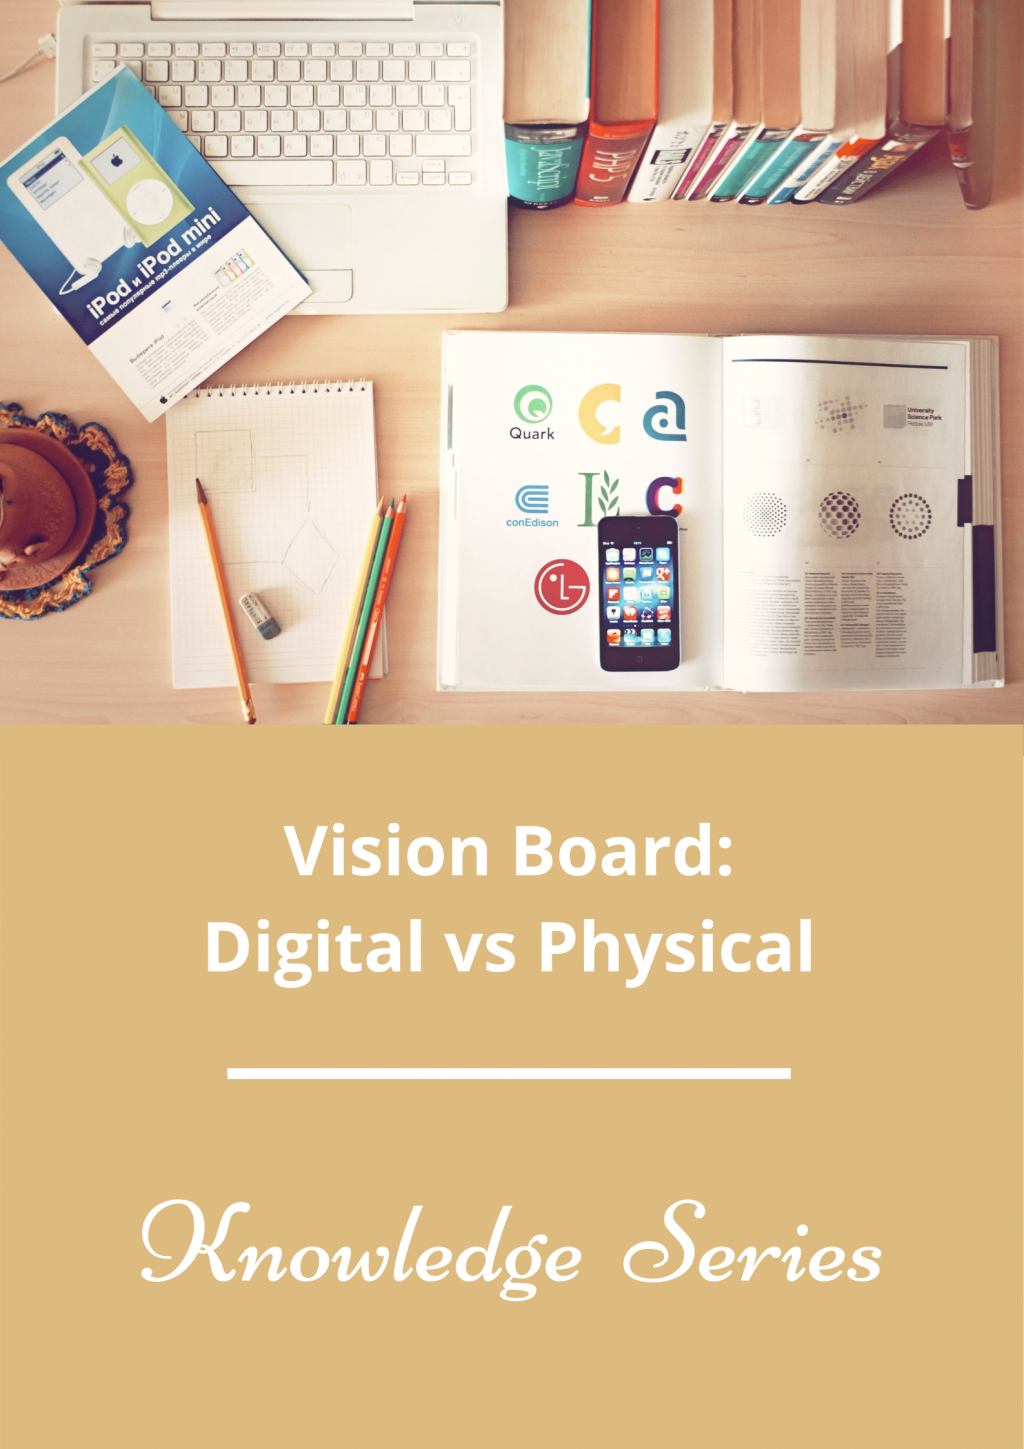 digital vs physical vision board